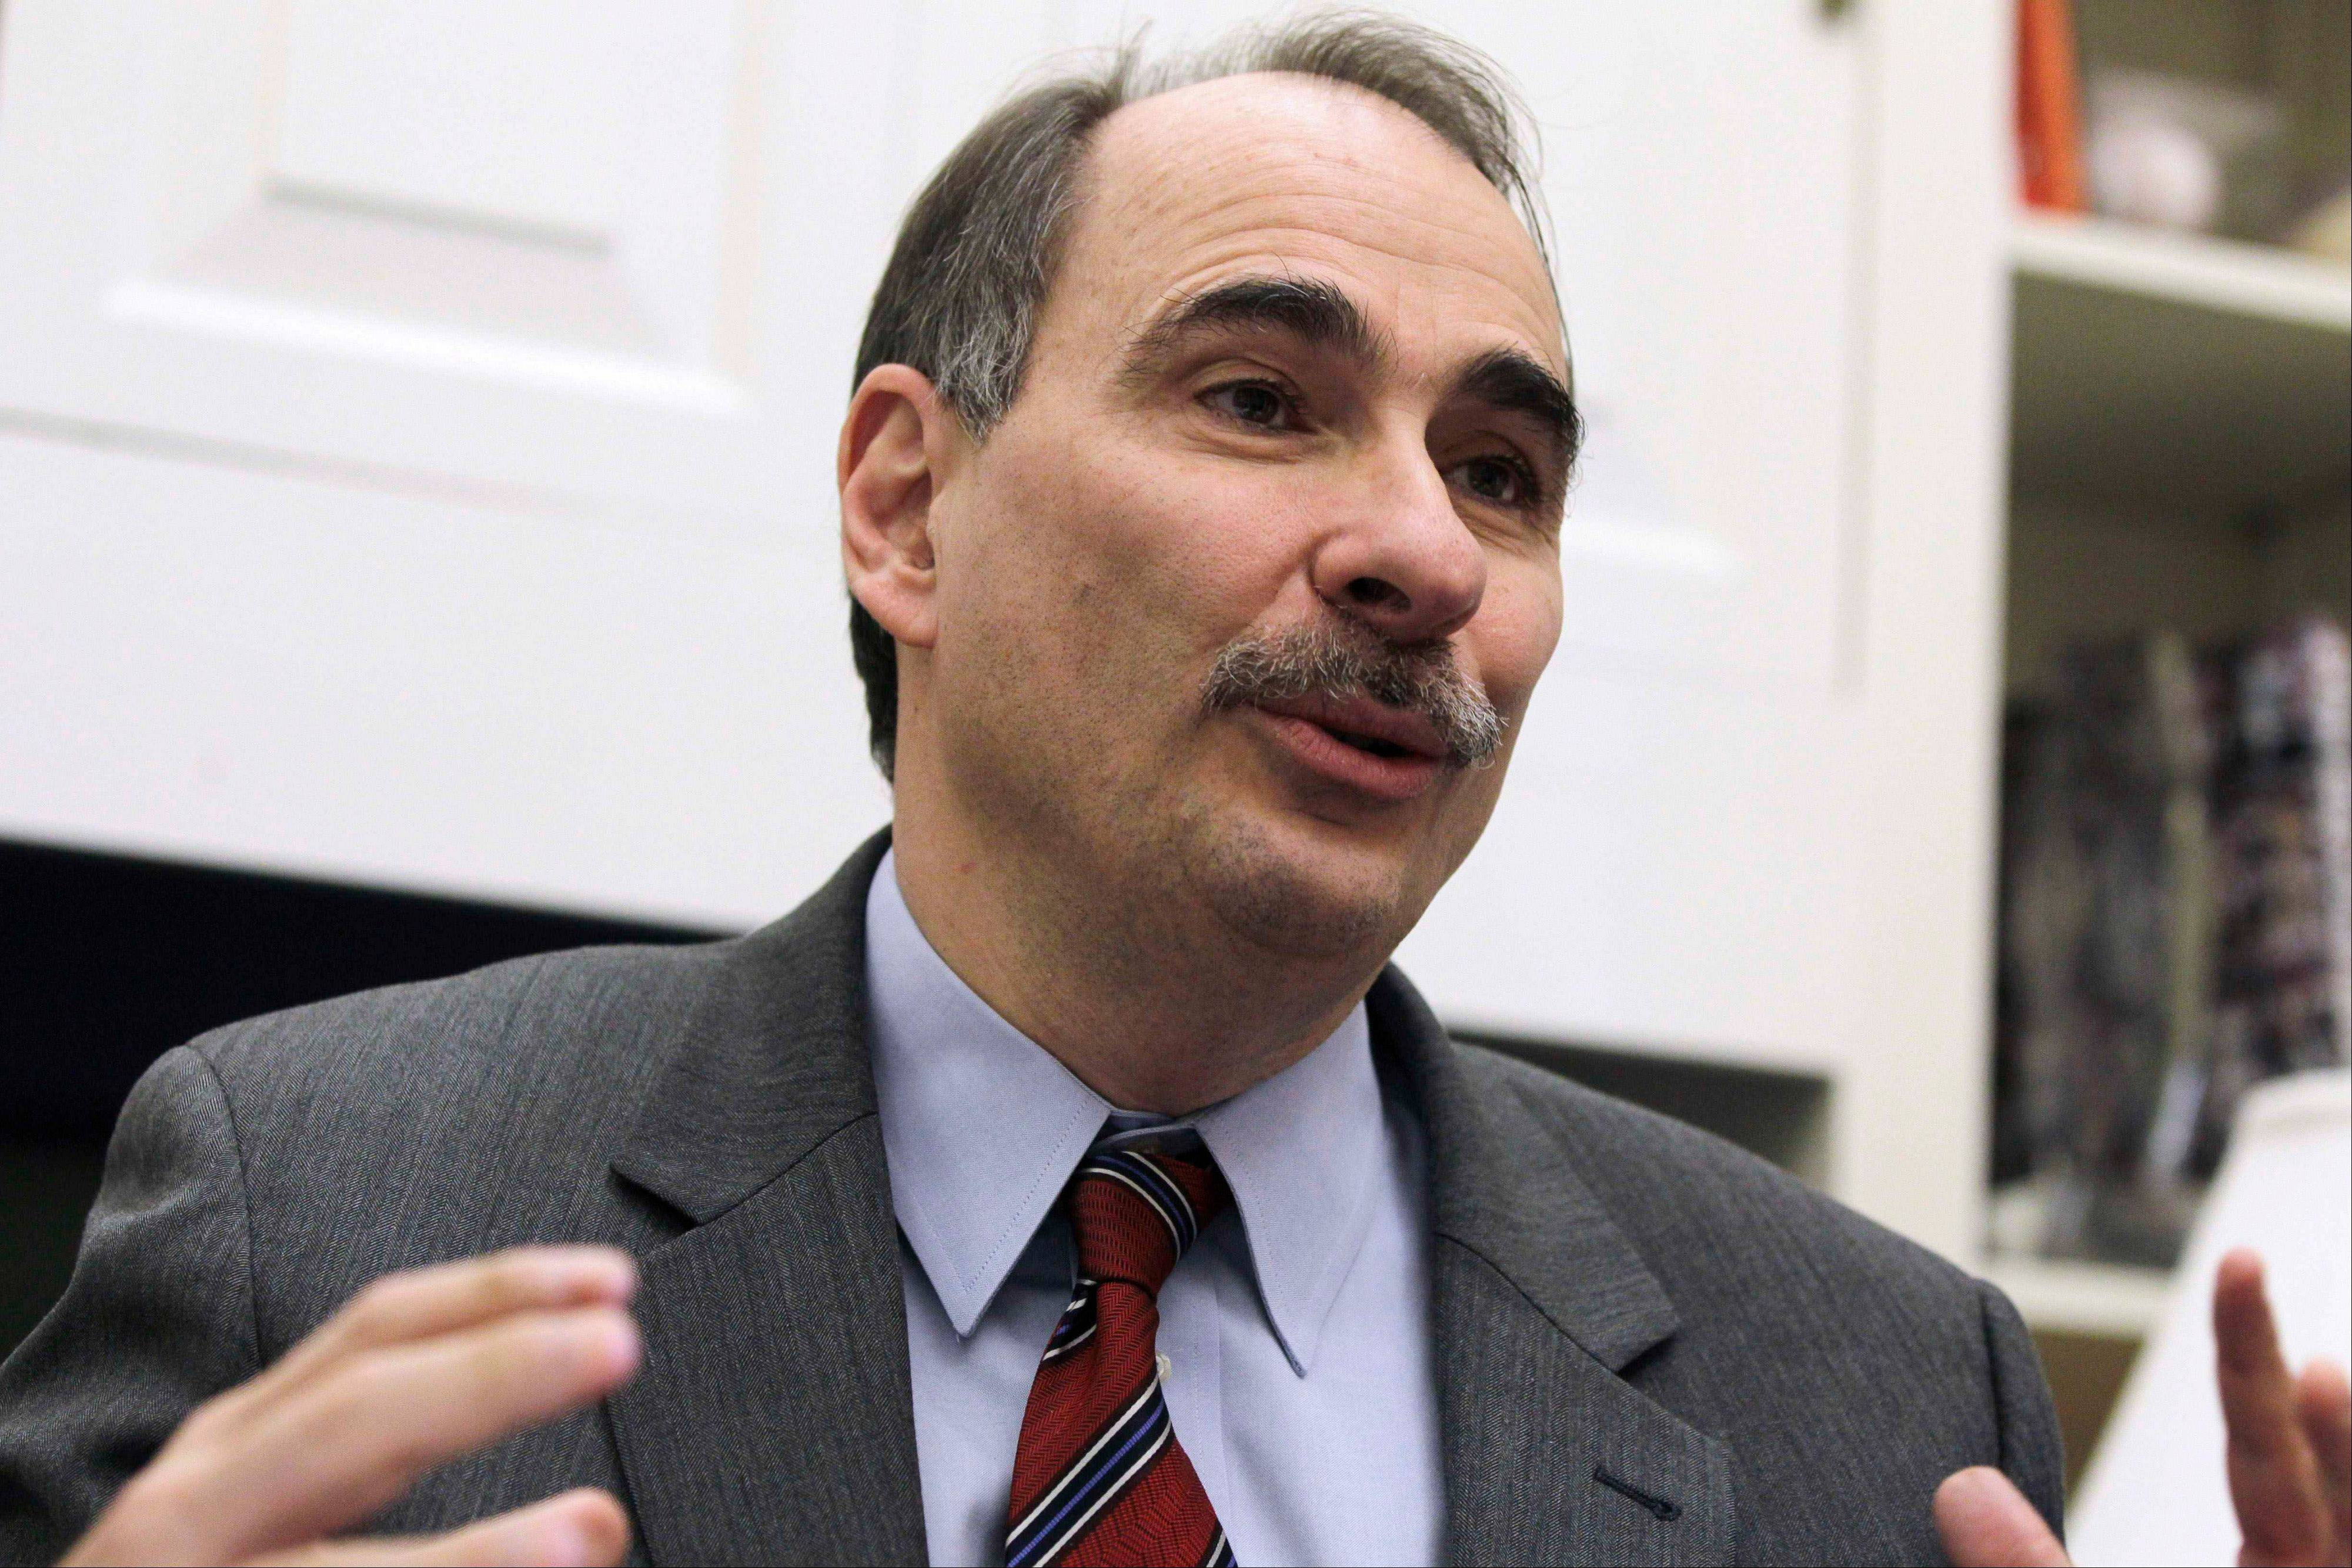 This Jan. 28, 2011, file photo shows David Axelrod, outgoing senior White House adviser to President Barack Obama, during an interview with the Associated Press at the White House. Axelrod, who is a former political reporter for The Chicago Tribune, has known the president since the early 1990s and was a driving force behind Obama�s message of change during the 2008 campaign. He is a calming influence on the Obama 2012 campaign team and has helped focus on middle-class voters.